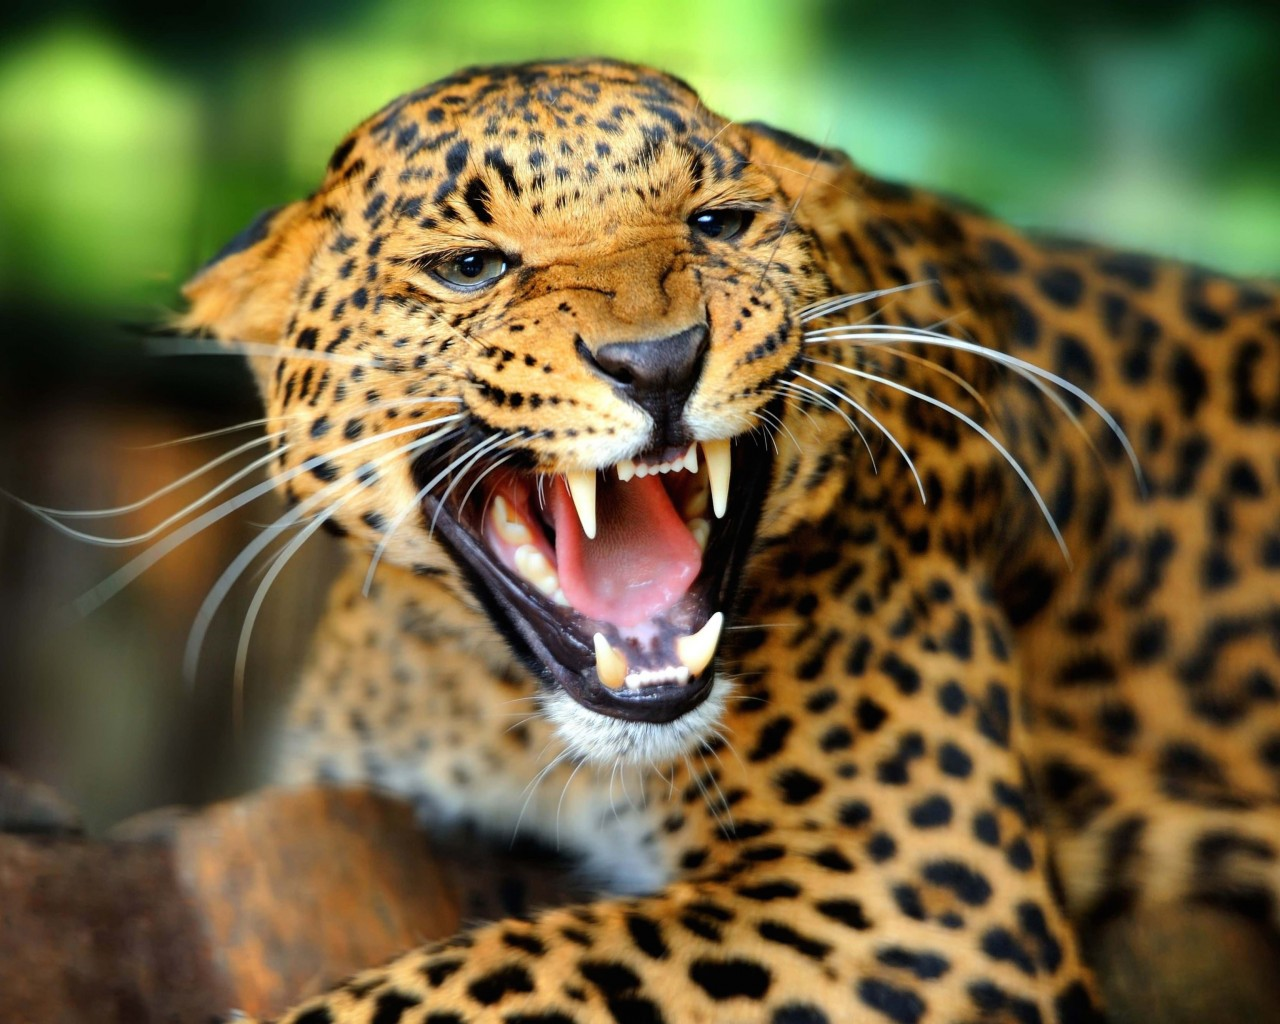 Growling Leopard Wallpaper for Desktop 1280x1024